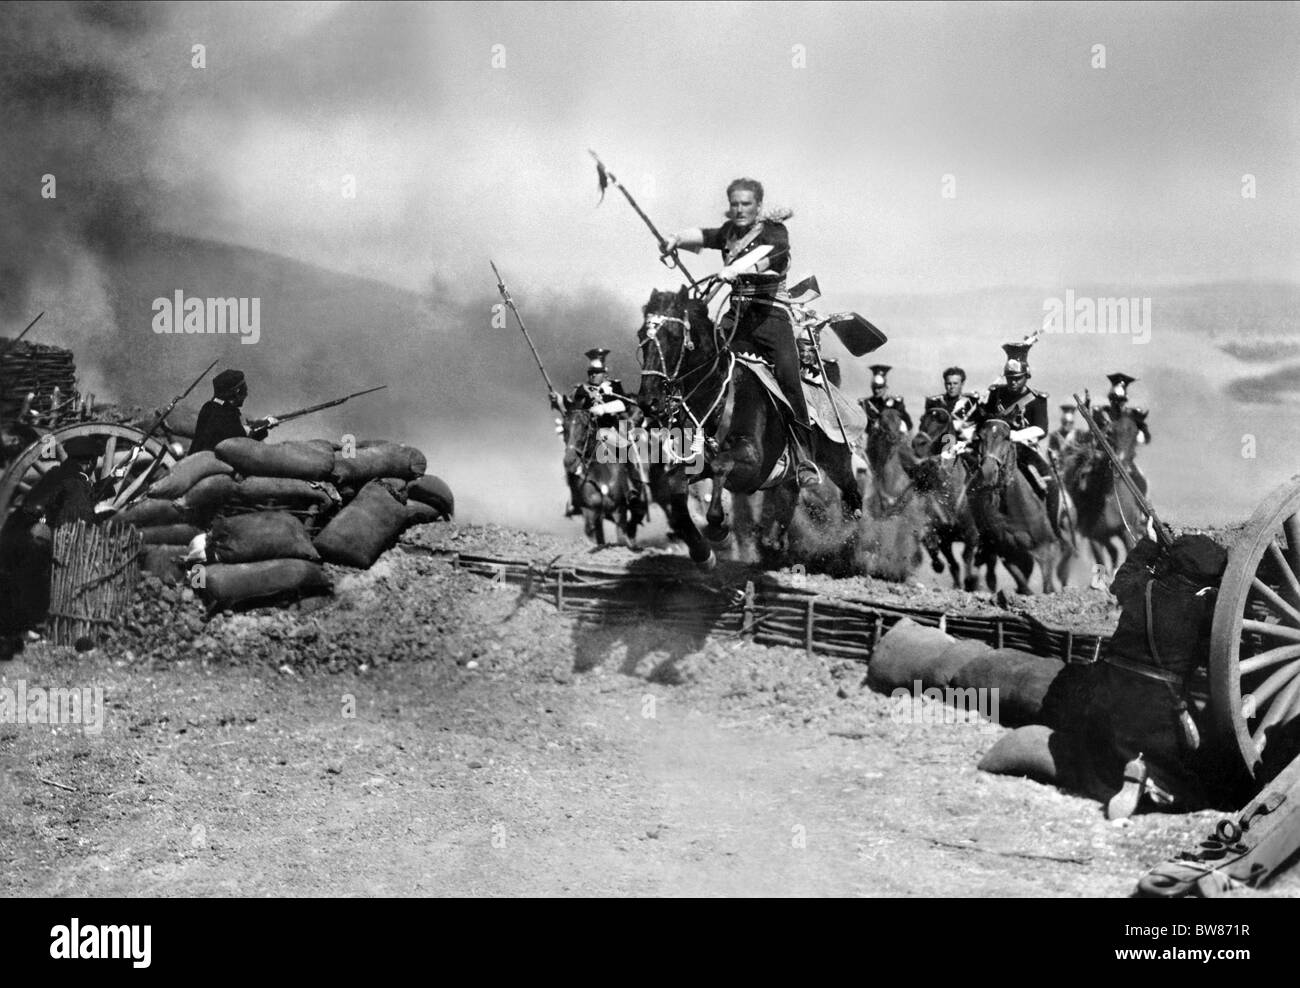 ERROL FLYNN THE CHARGE OF THE LIGHT BRIGADE (1936) - Stock Image